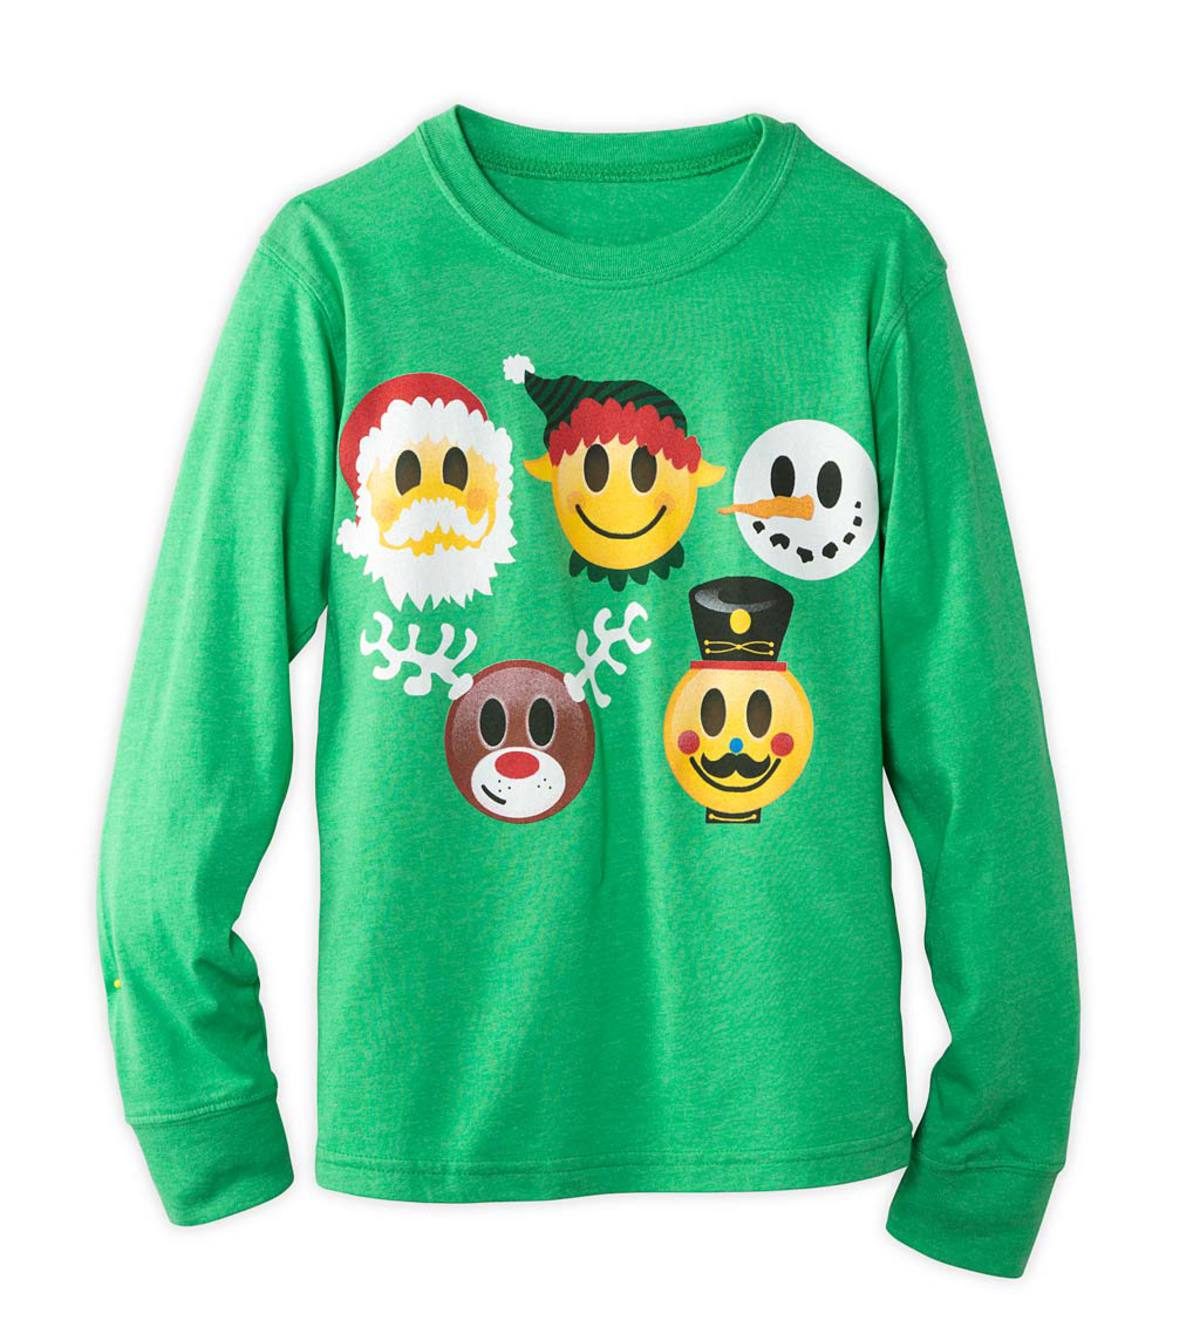 Holiday Emojis Tee - Green - 7